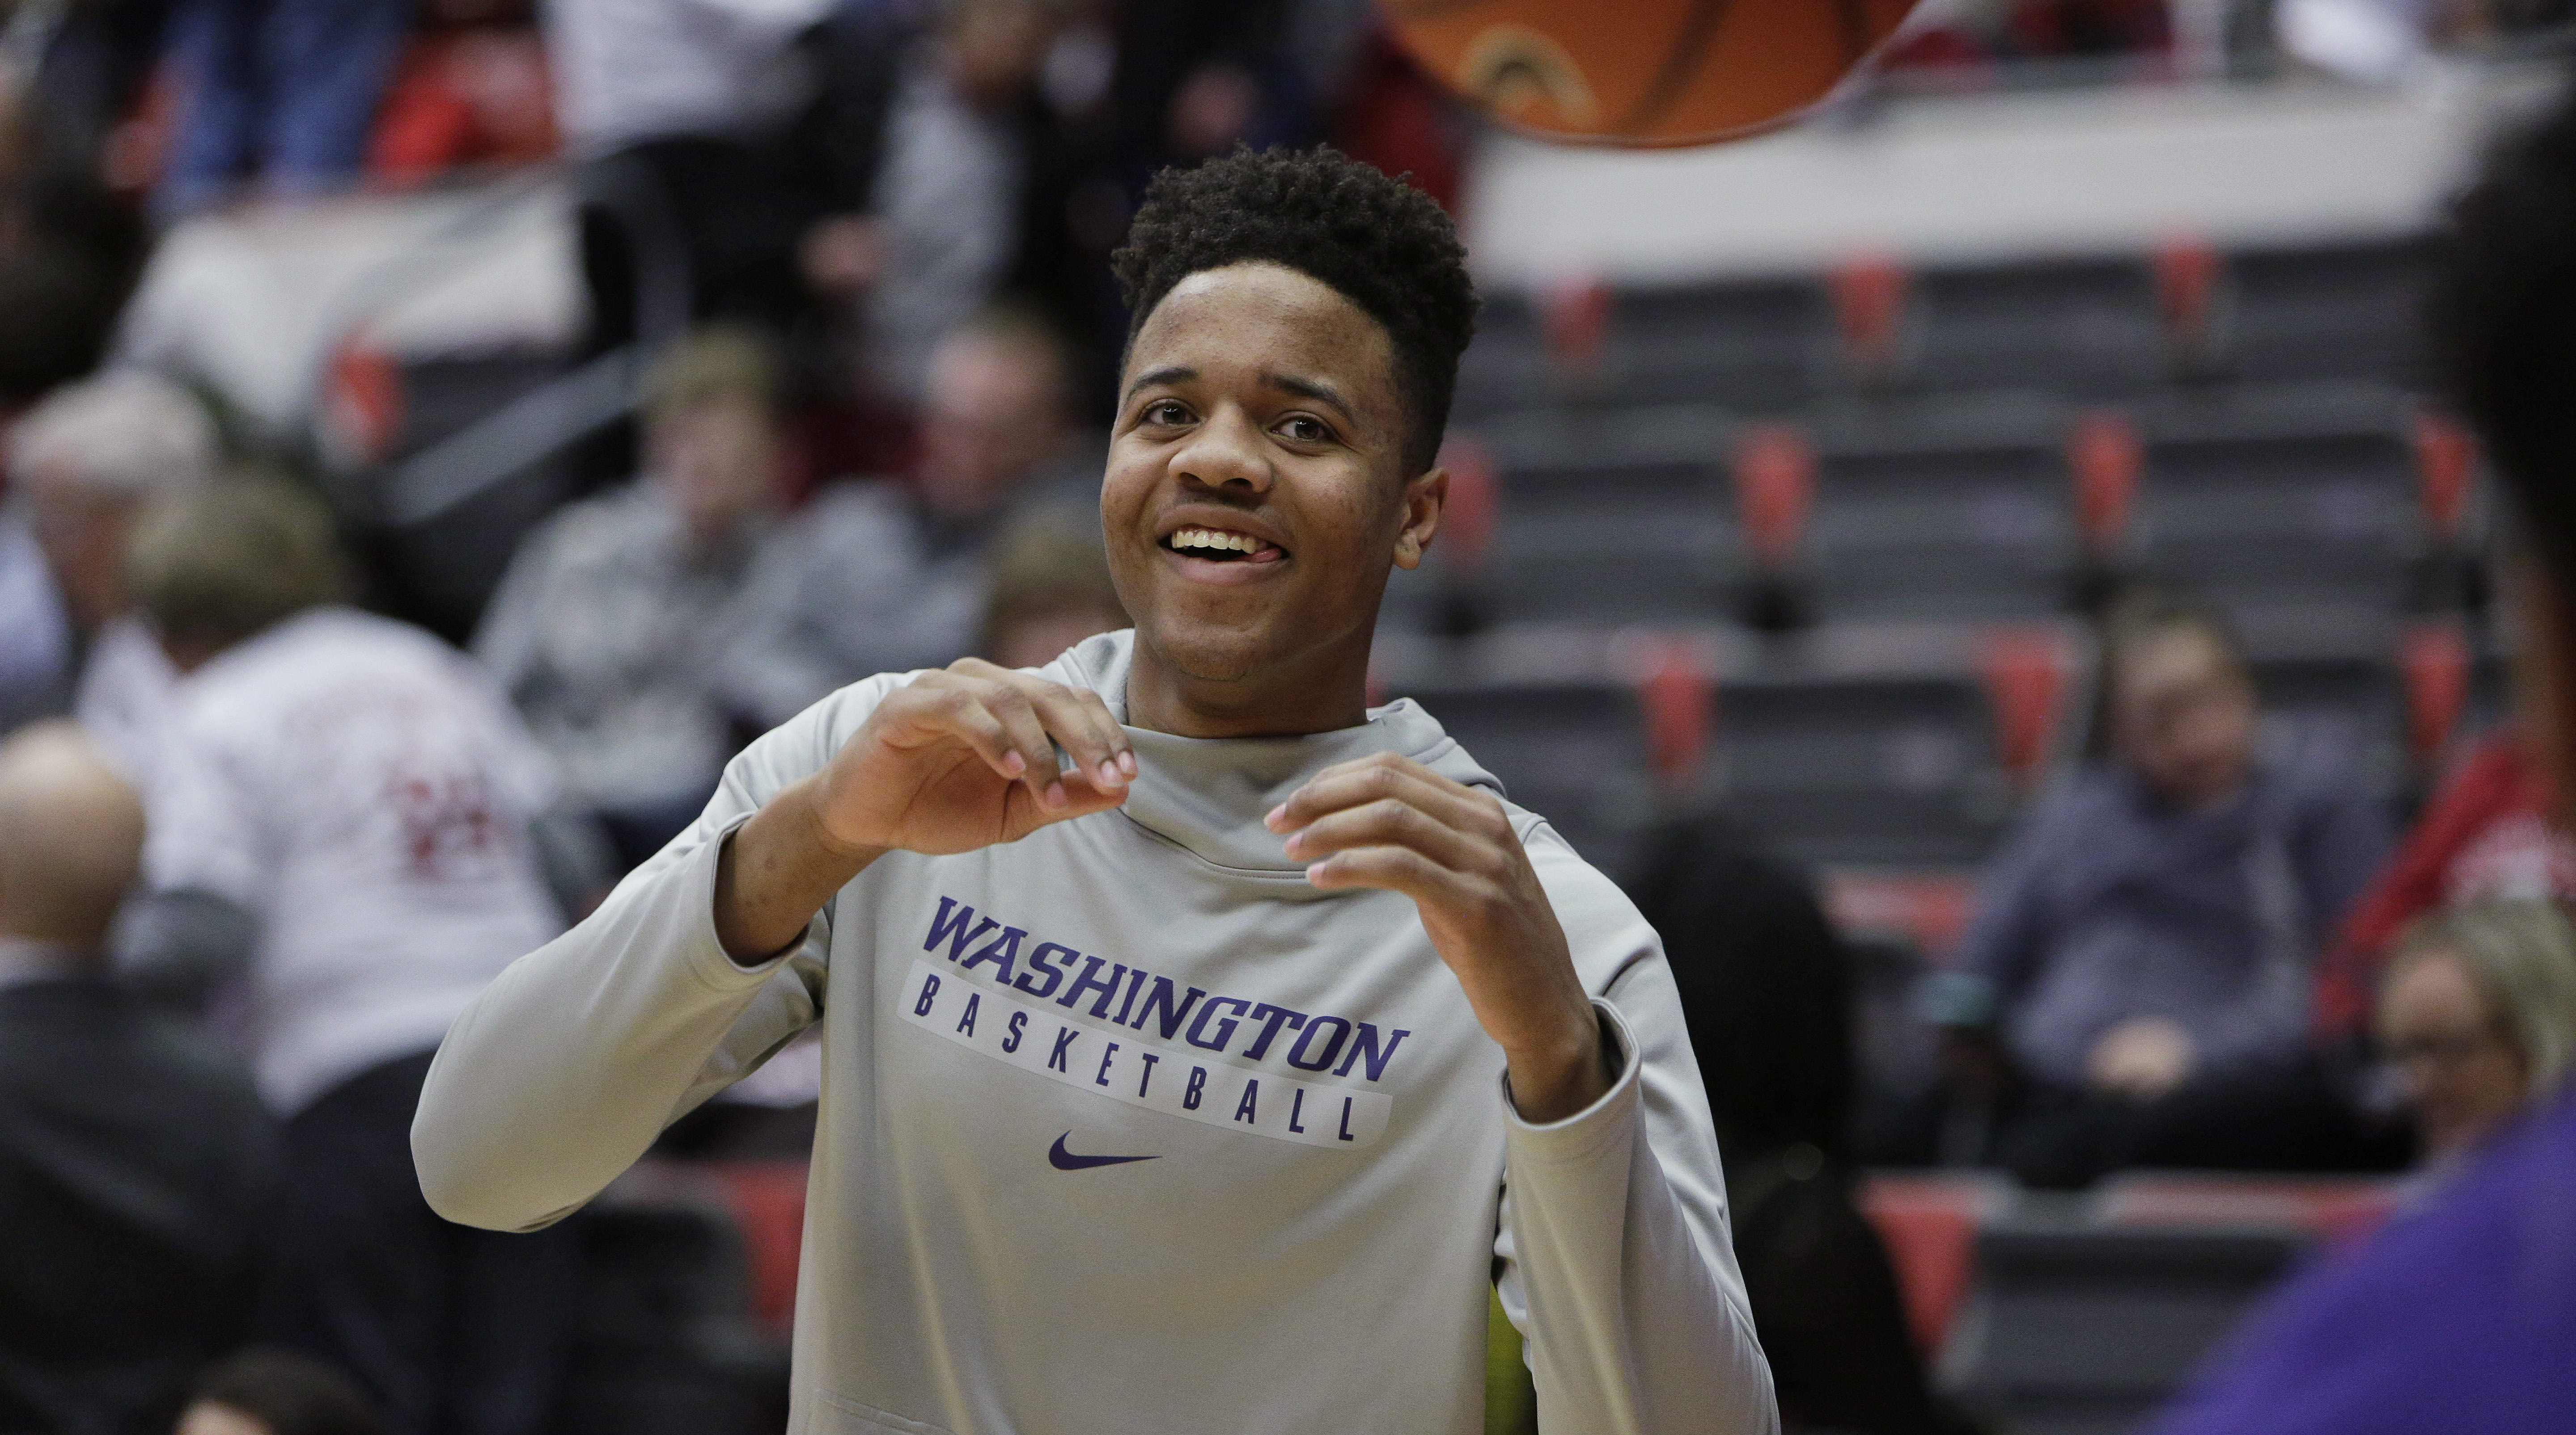 76ers select Markelle Fultz with No. 1 pick in 2017 NBA draft